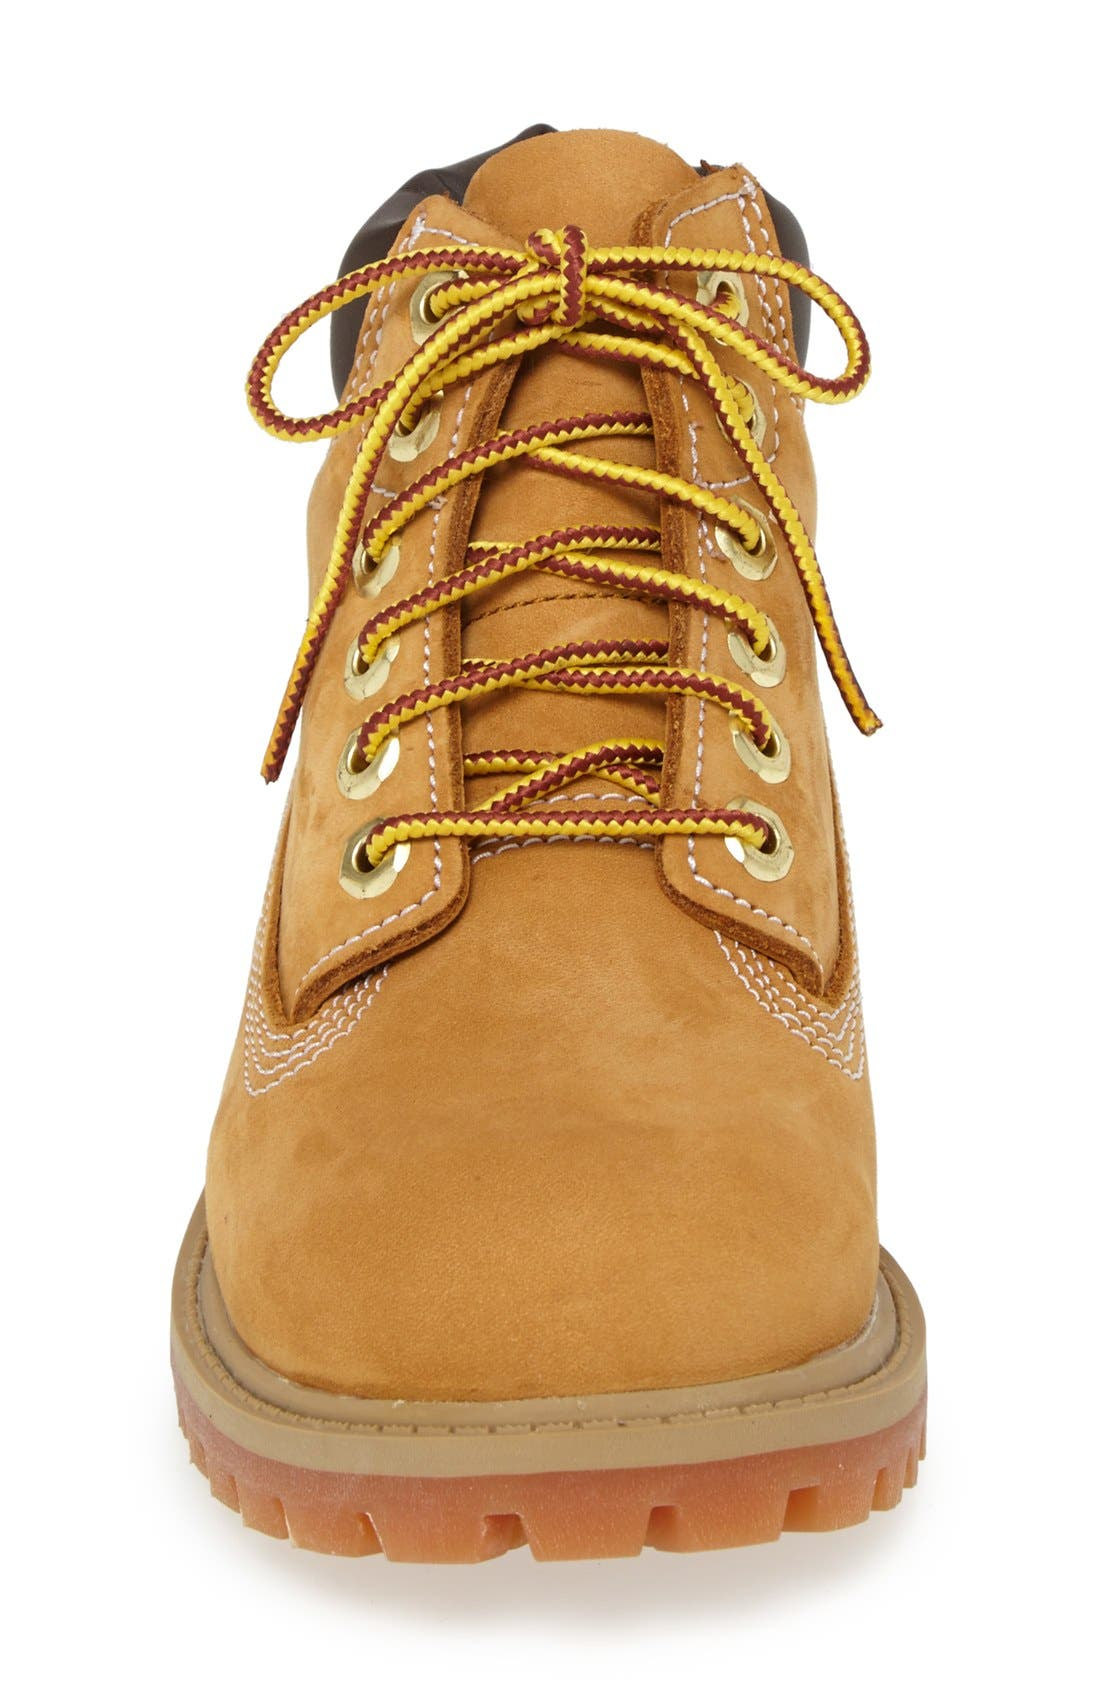 Alternate Image 3  - Timberland '6 Inch Premium' Waterproof Boot (Toddler, Little Kid & Big Kid)